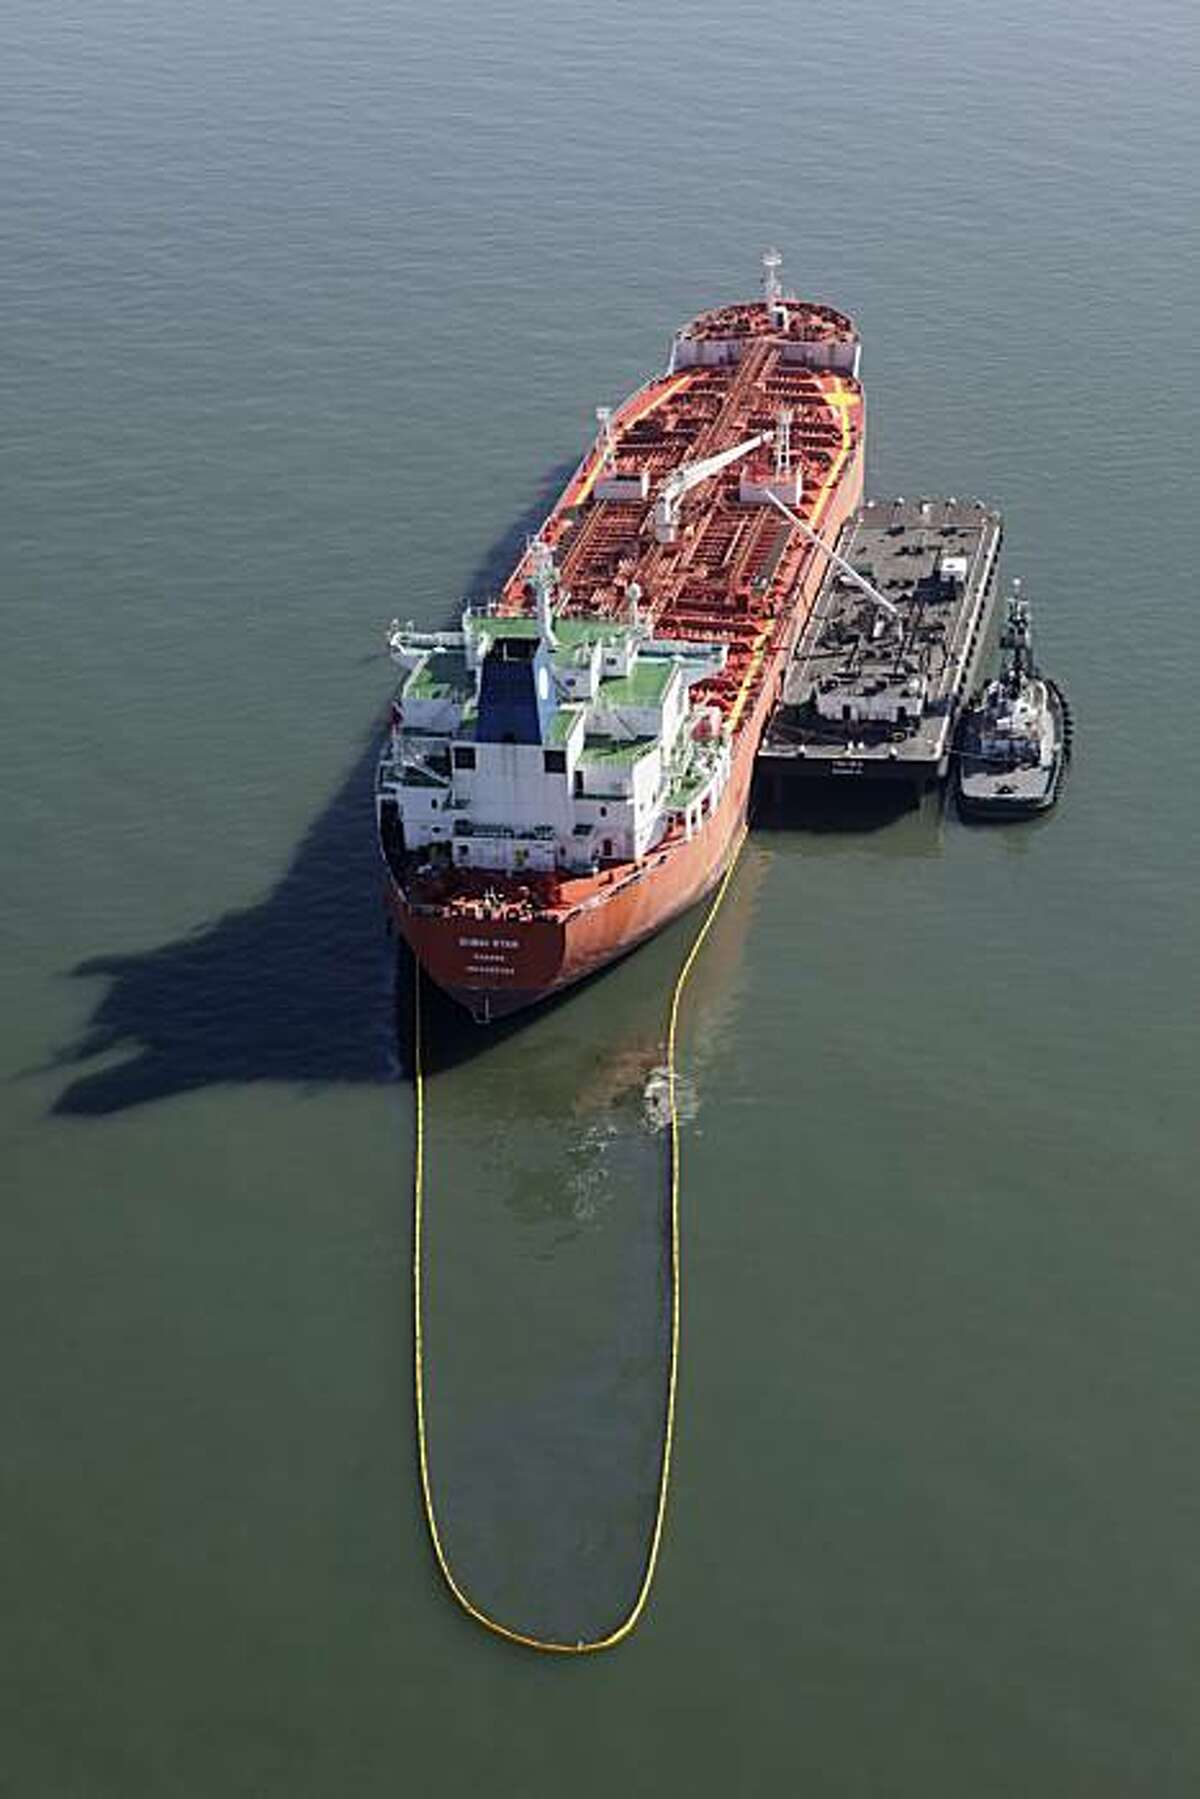 The Dubai Star oil tanker is seen in an aerial view off the coast of San Francisco on Friday, Oct. 30, 2009. The Panamanian-flagged ship began leaking bunker fuel during a fuel transfer Friday morning. (AP Photo/Marcio Jose Sanchez)